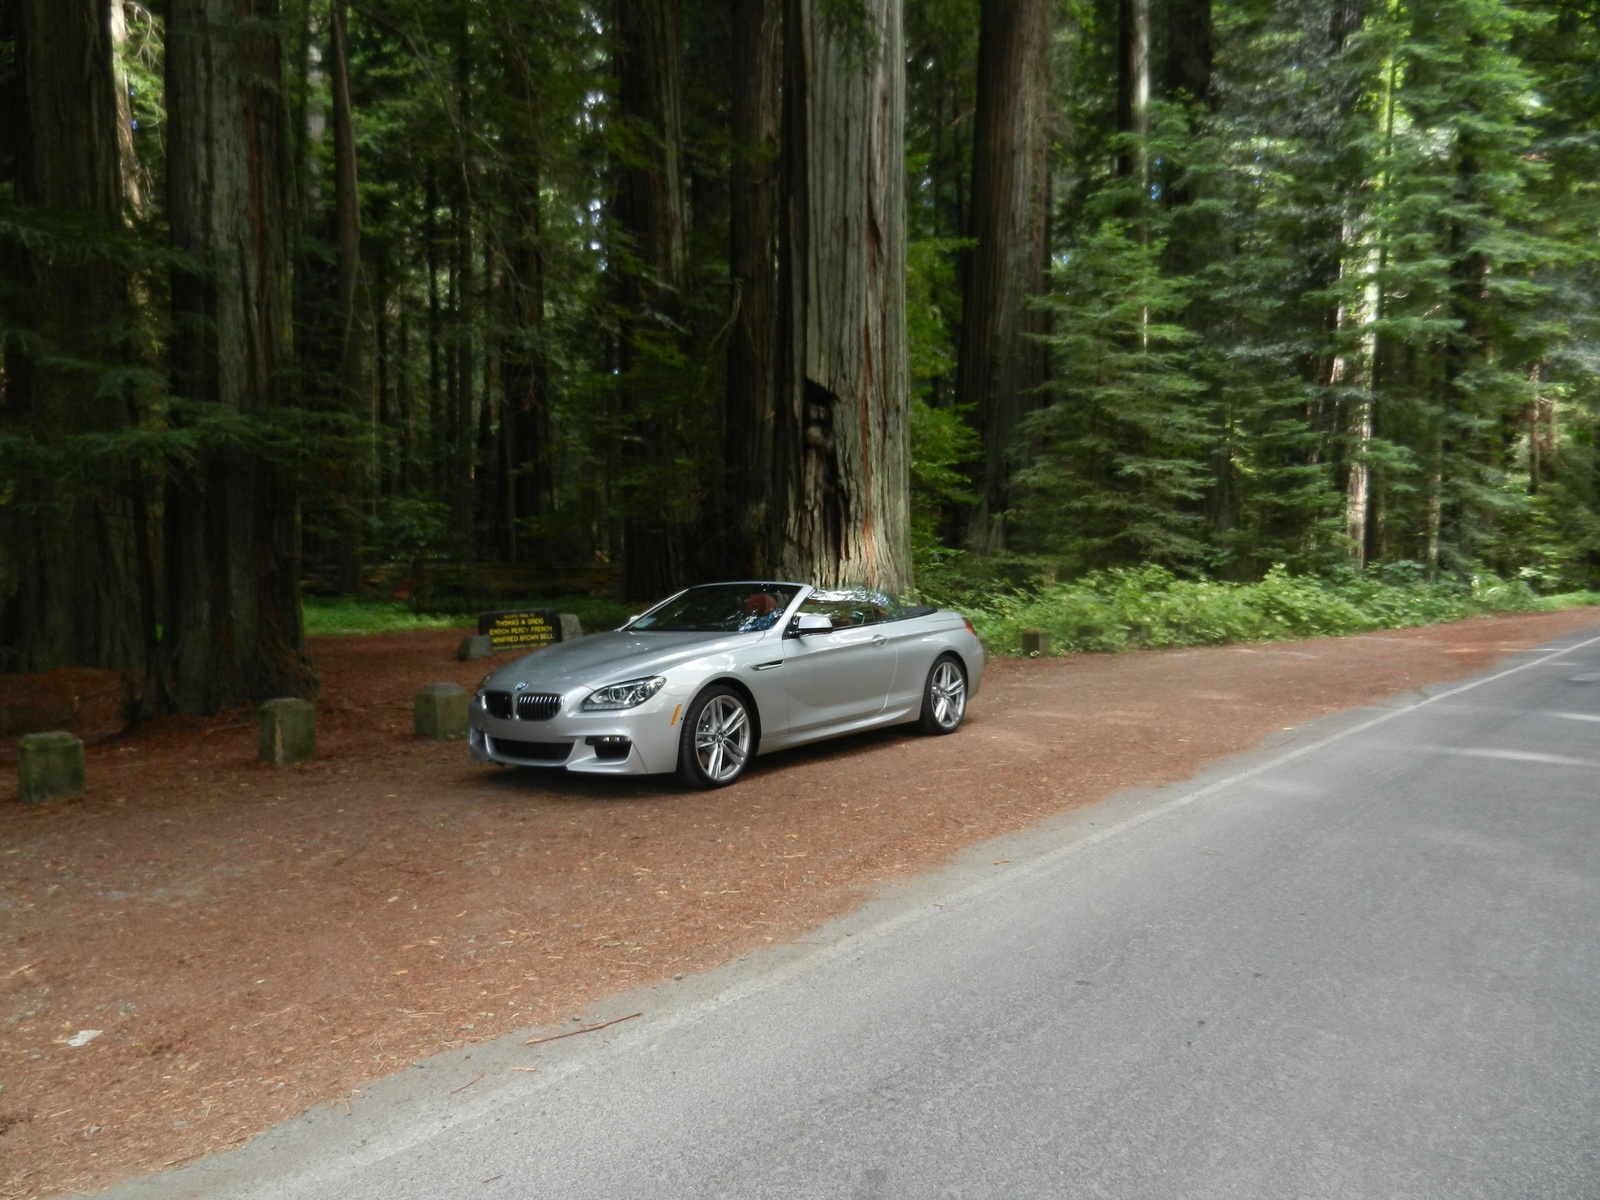 640i in Redwoods